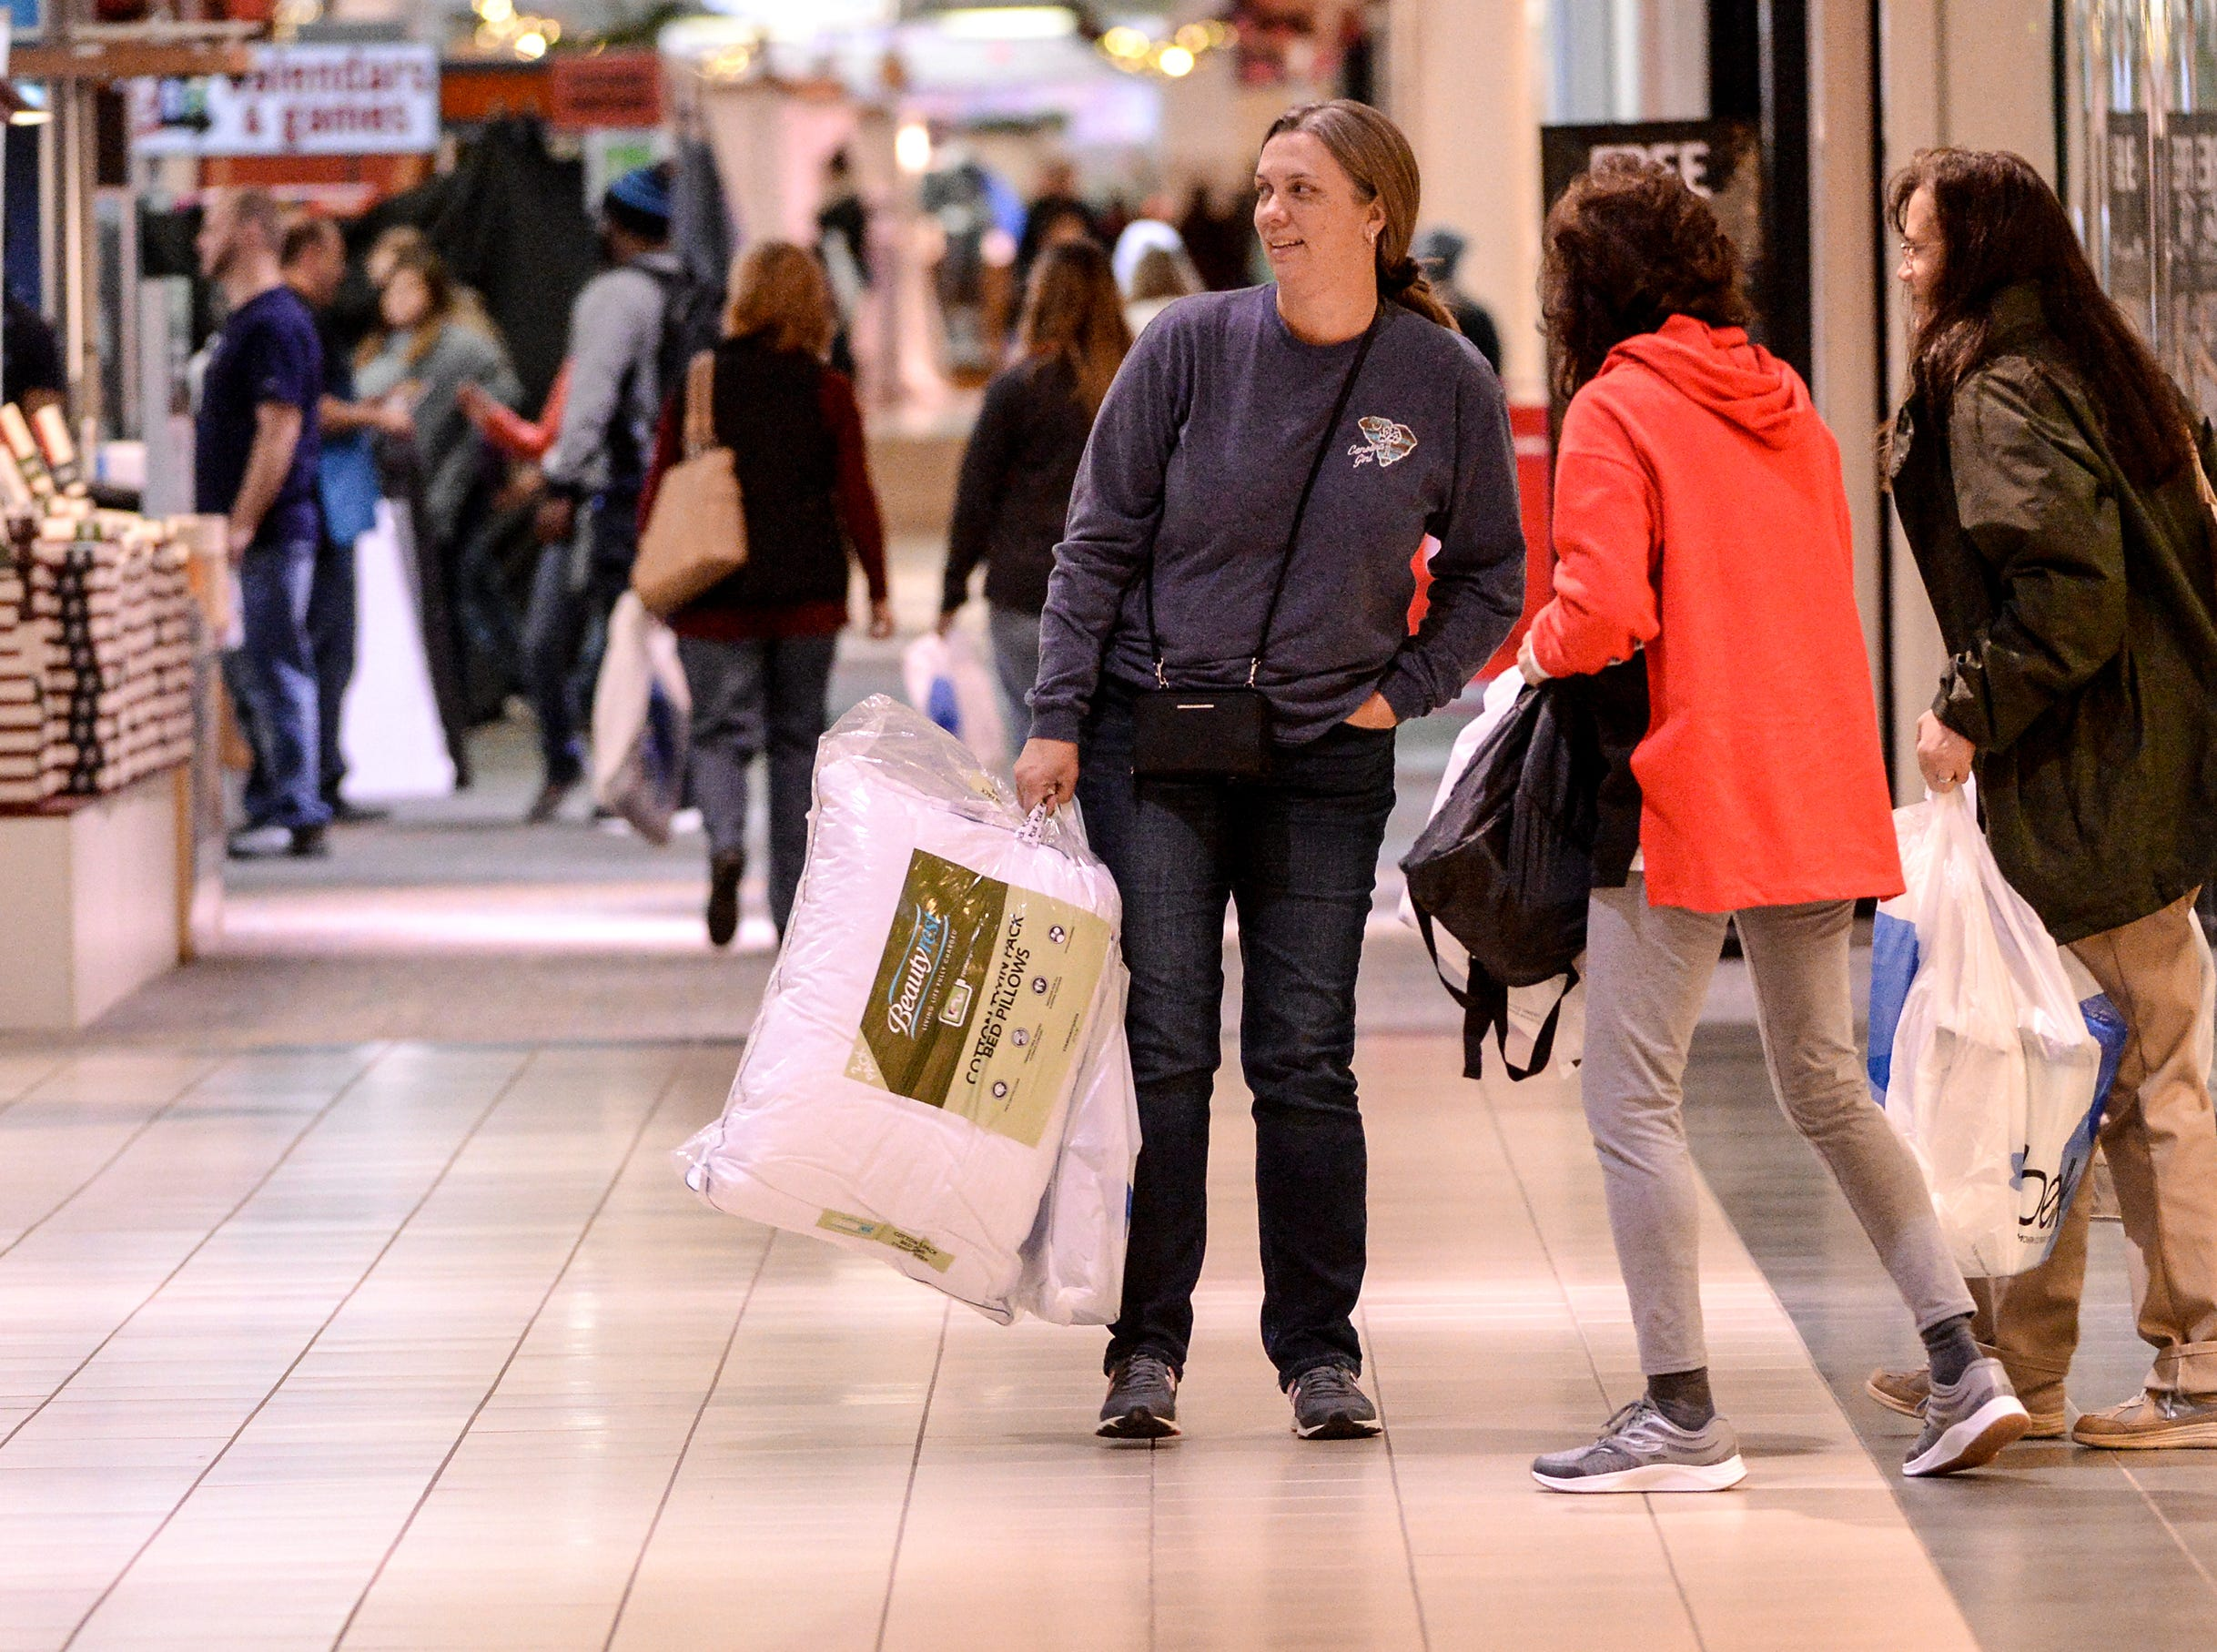 Customers Leandra Robinson, left, of Moncks Corner holds a bag with pillows after shopping in the Anderson Mall for Black Friday sales items in Anderson on Friday, November 23, 2018.